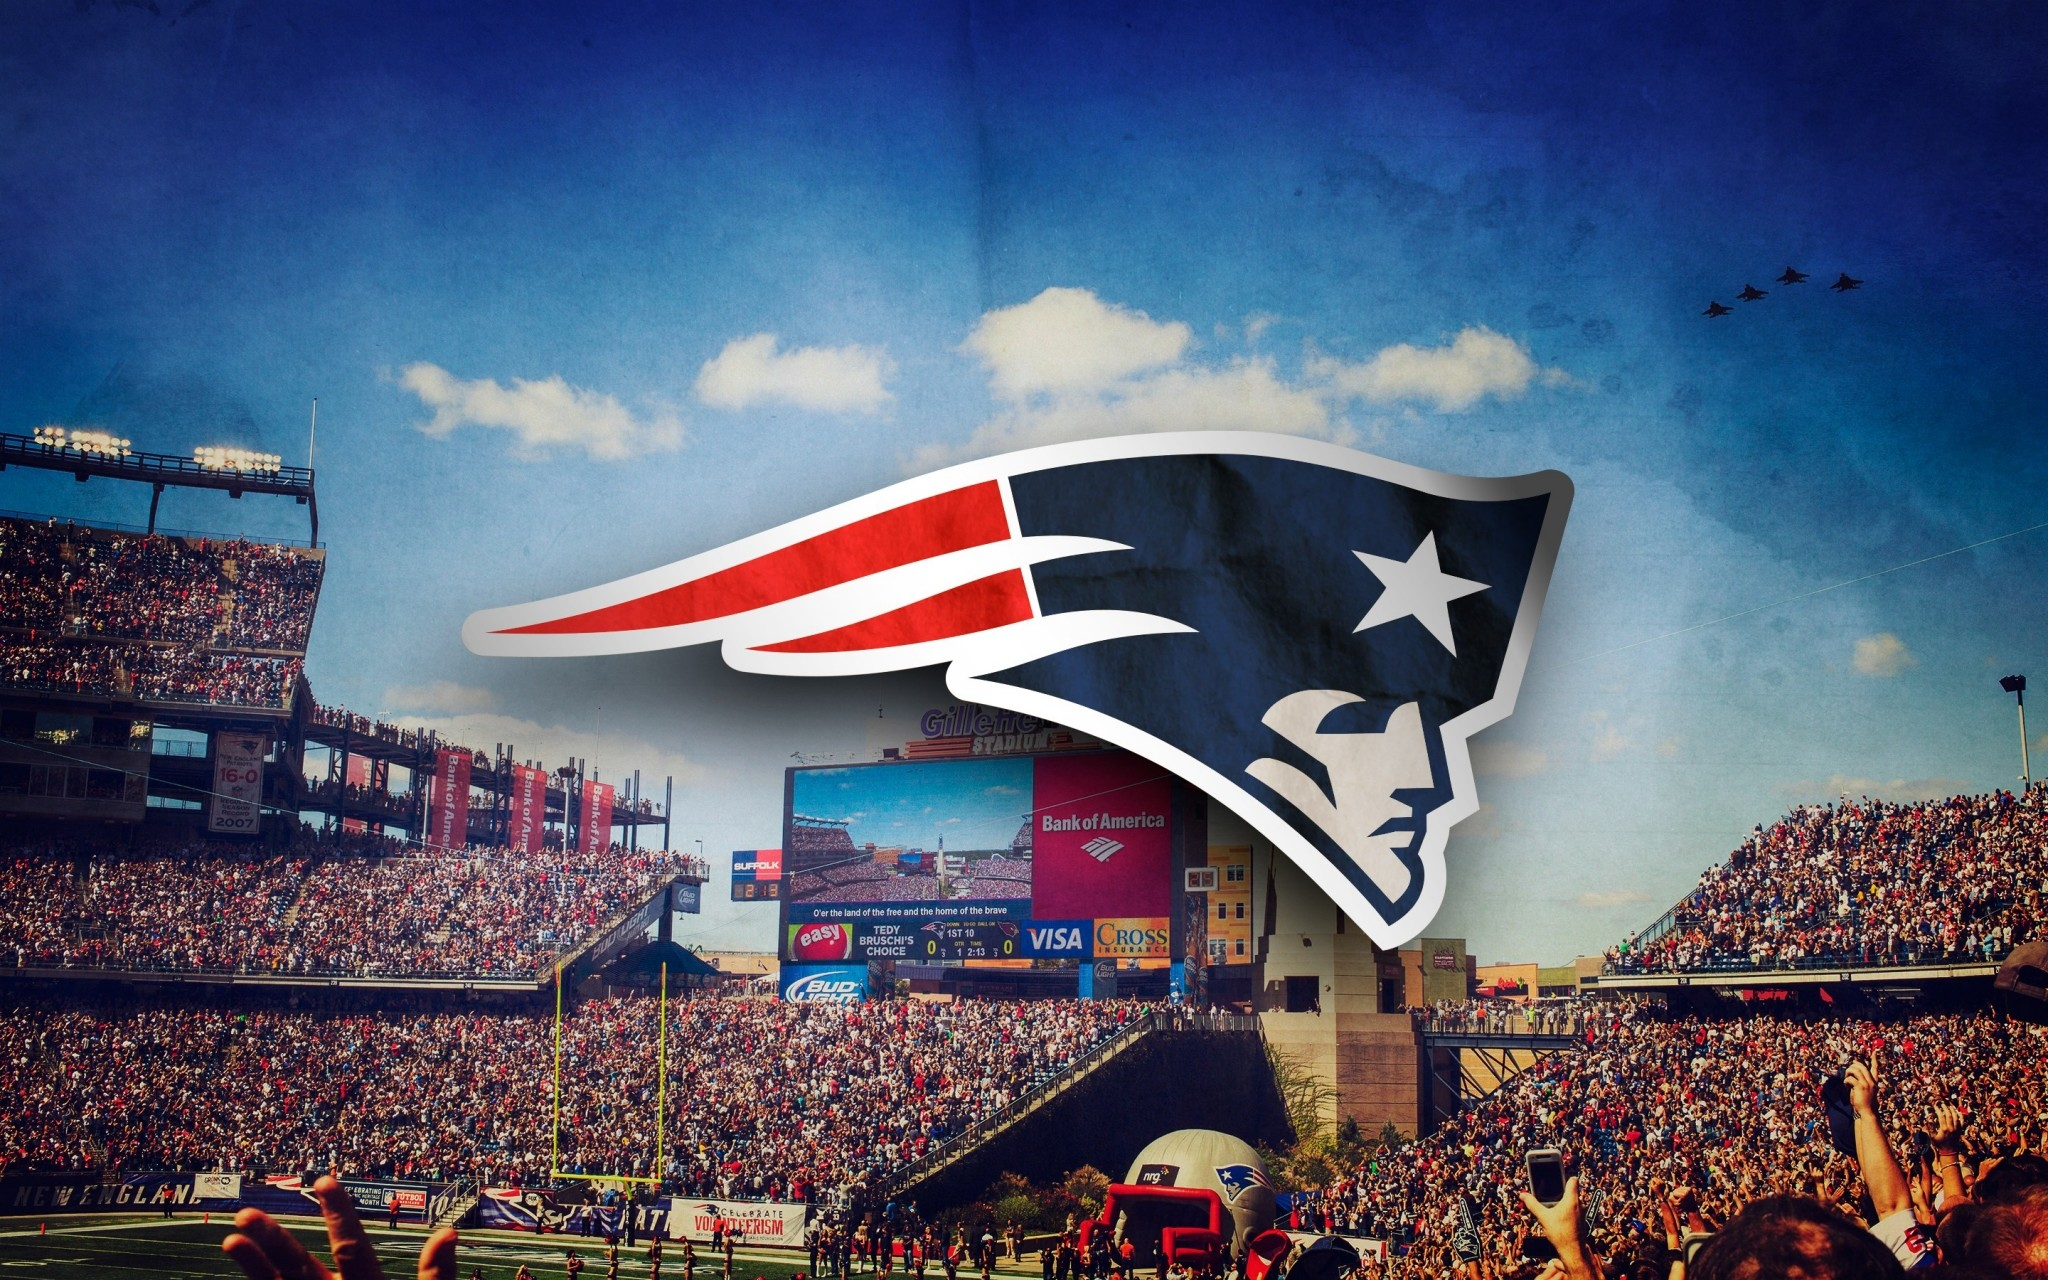 Tom Brady Wallpaper Iphone X New England Patriots Screensaver Wallpaper 68 Images